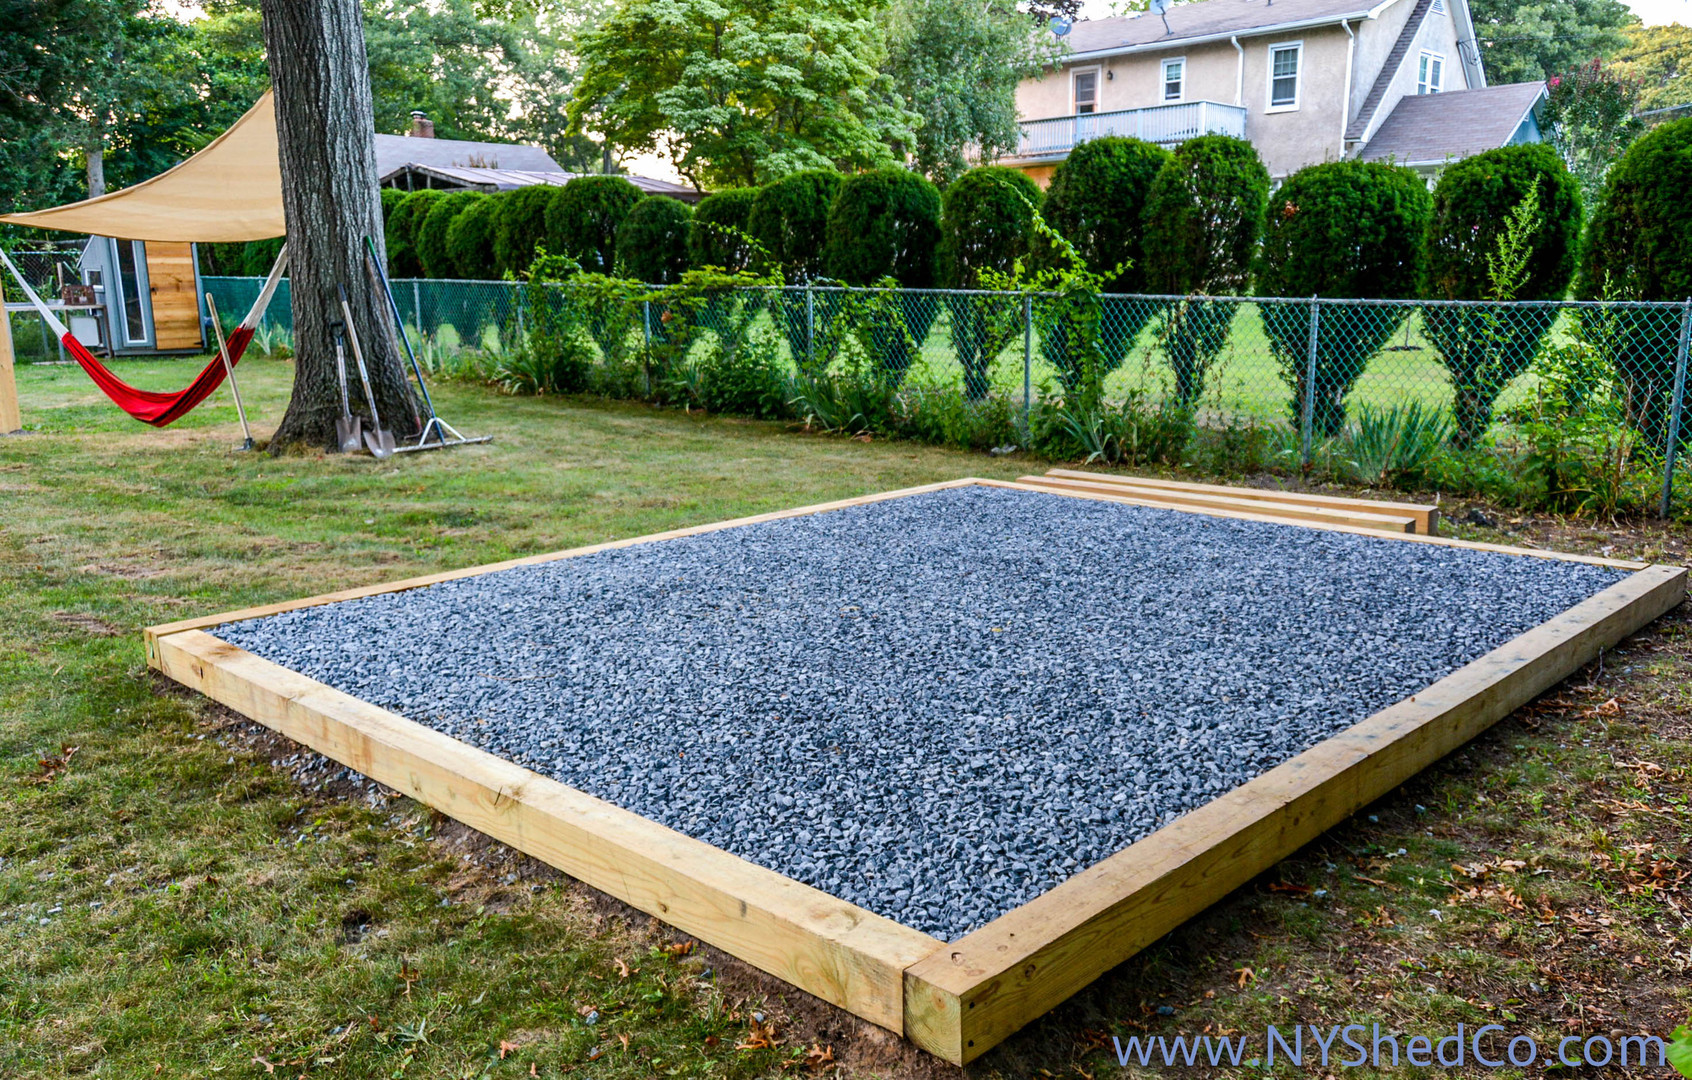 3 4 Quot Crushed Stone : Ny shed co sheds built on long island site requirement